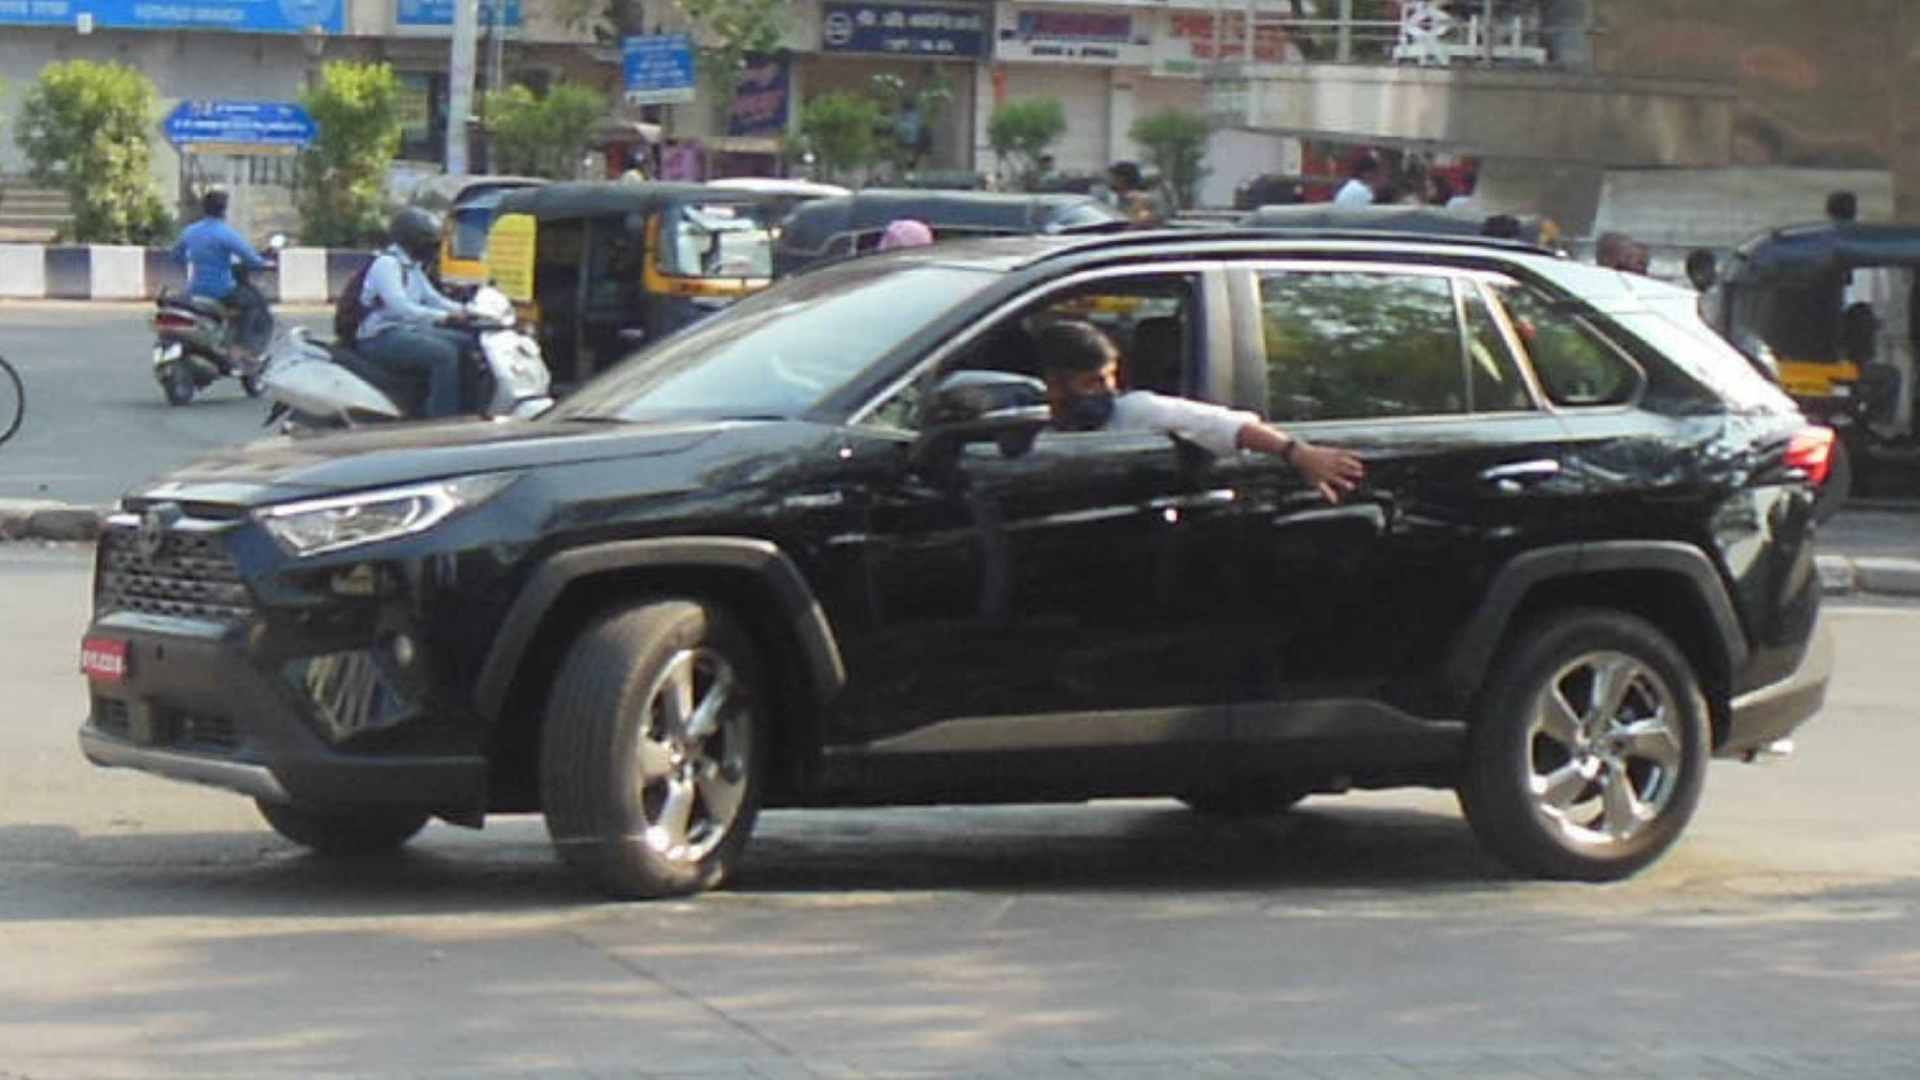 Toyota RAV4 spied on test in India, hybrid SUV has a pure-electric range of 75km- Technology News, FP